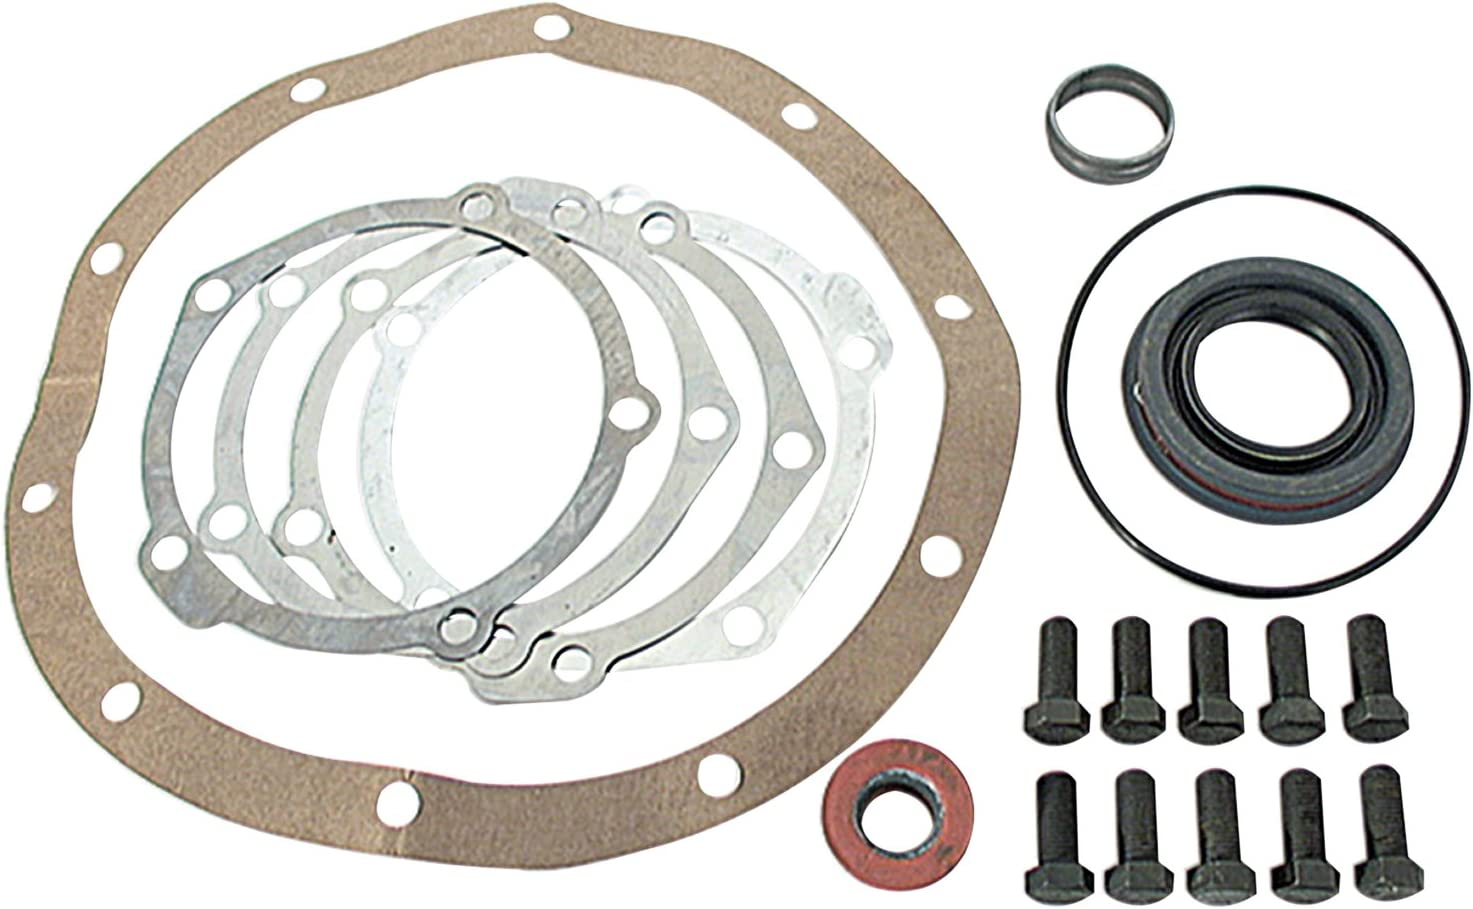 SK F9 Pinion Depth Shim Kit for Ford 9 Differential Yukon Gear /& Axle